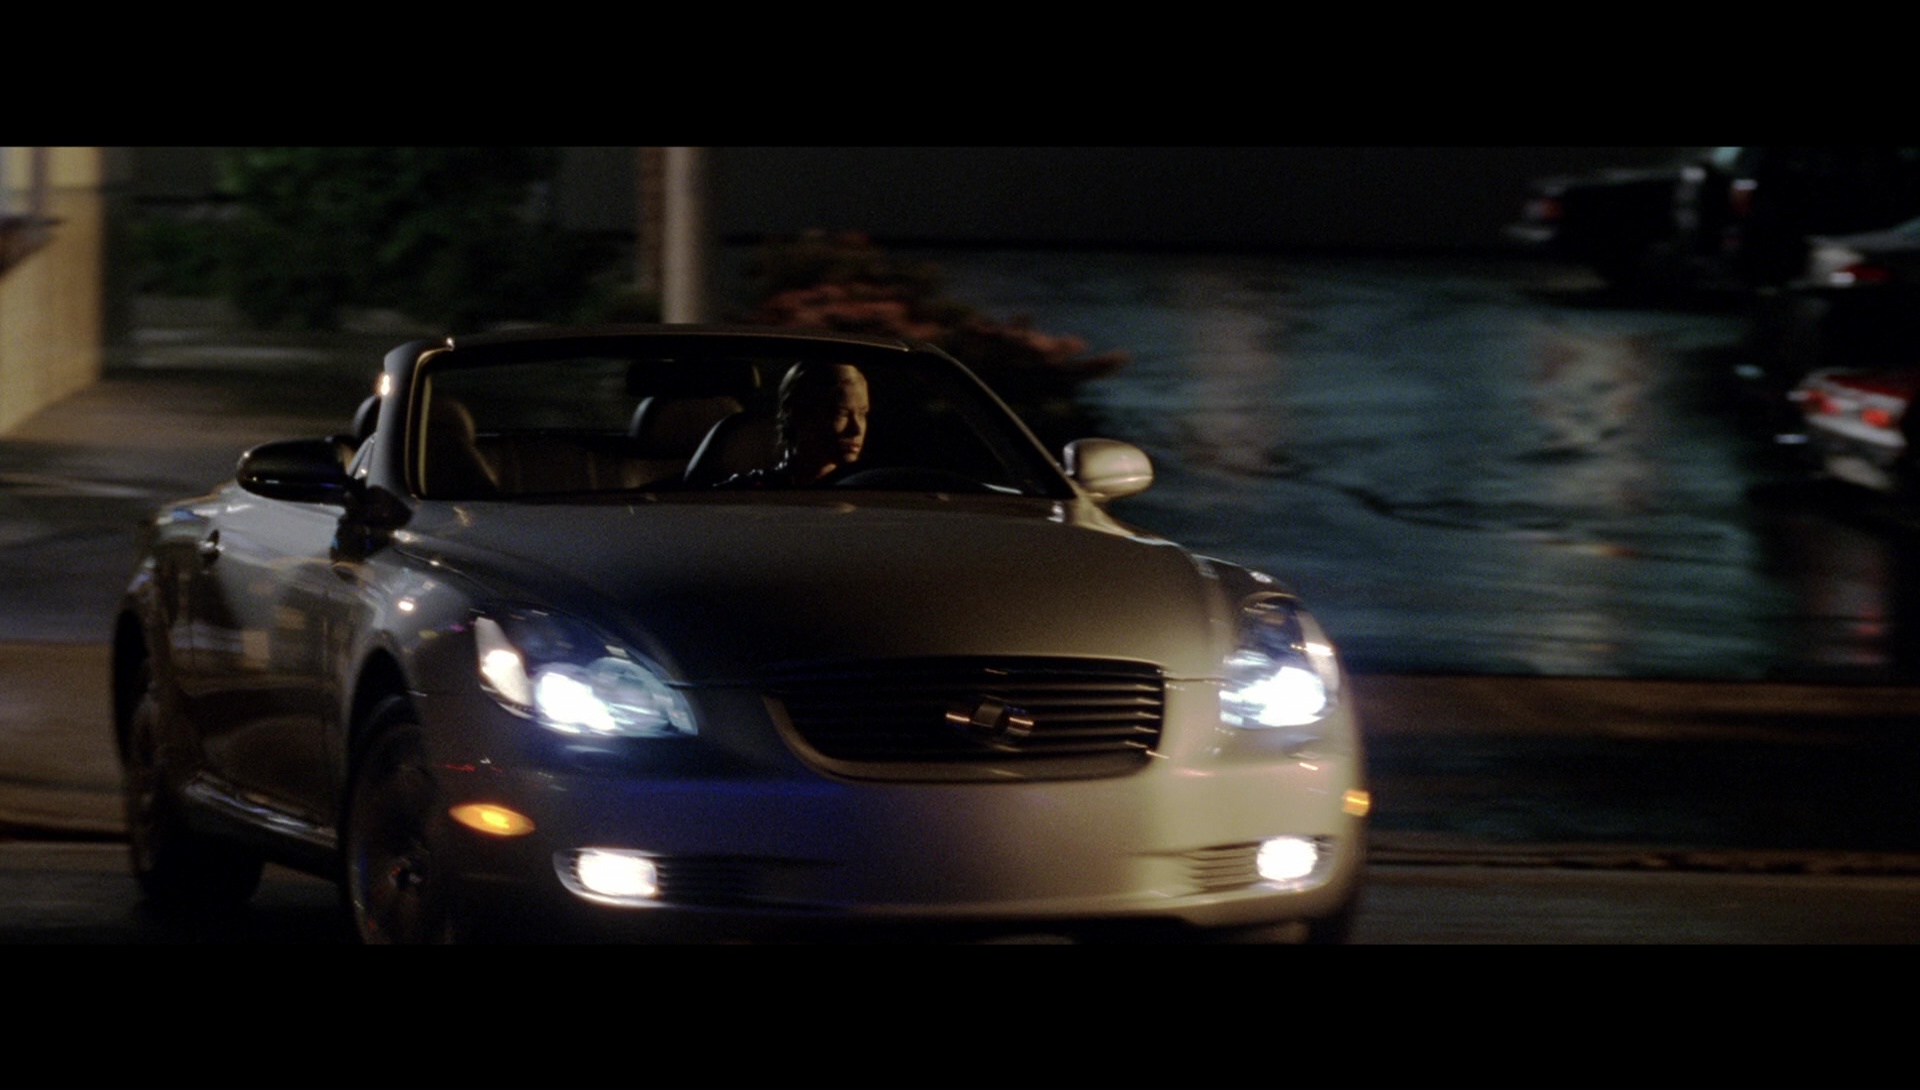 Seen In The Movie Lexus Sc 430 Car Driven By Kristanna